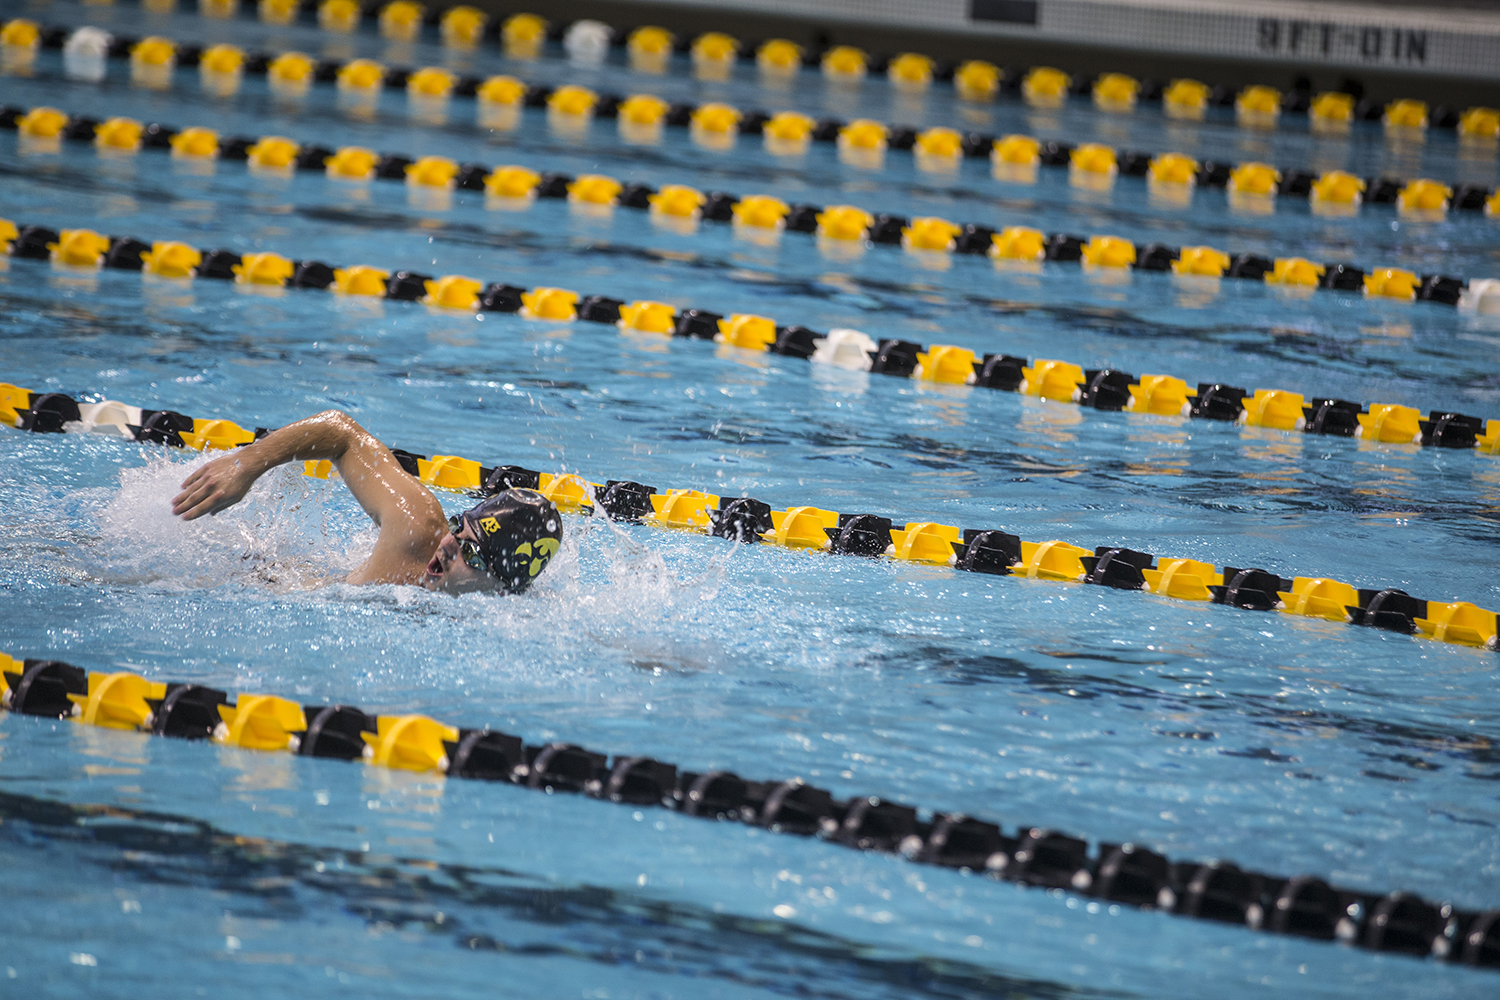 A+swimmer+competes+in+a+freestyle+event+during+the+Iowa+Swimming+and+Diving+Intrasquad+Meet+at+the+Campus+Recreation+and+Wellness+Center+on+Saturday%2C+Sept.+29%2C+2018.